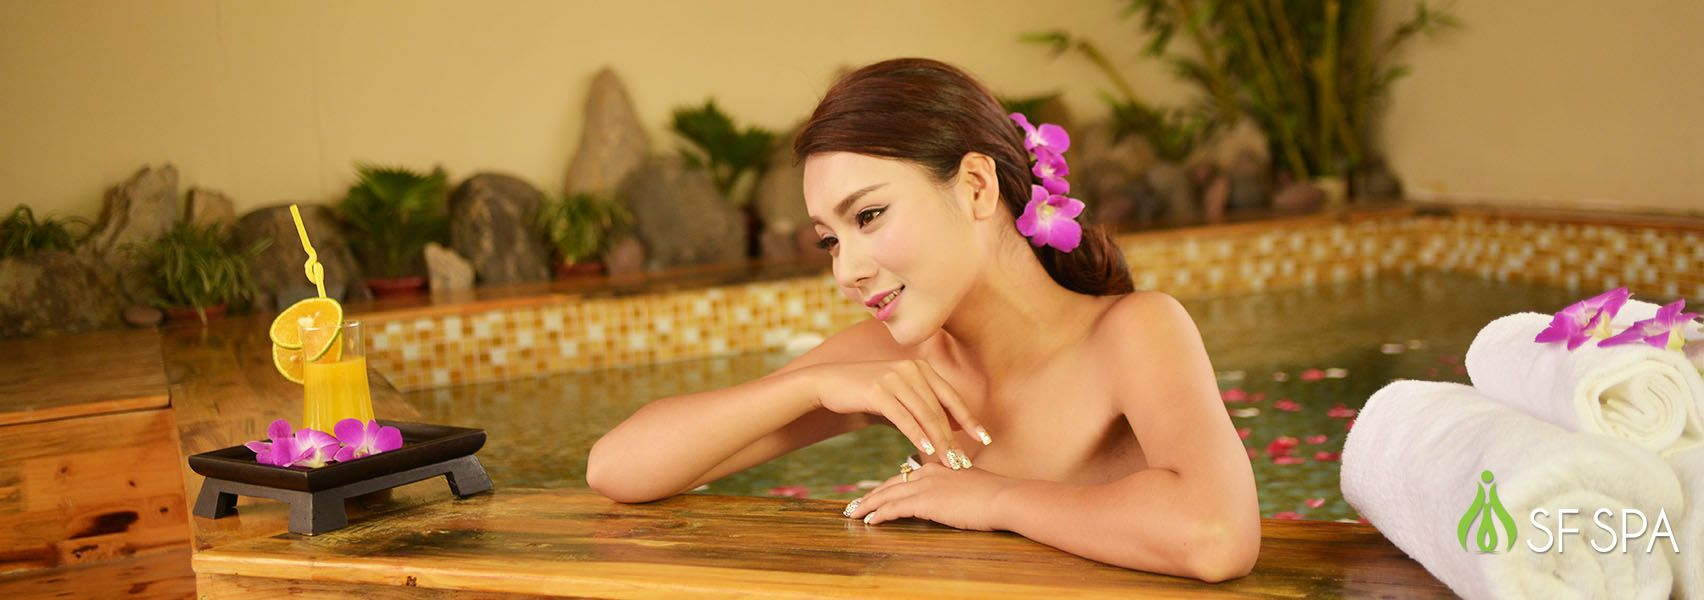 SF-Spa-Our-Service-Full-body-massage